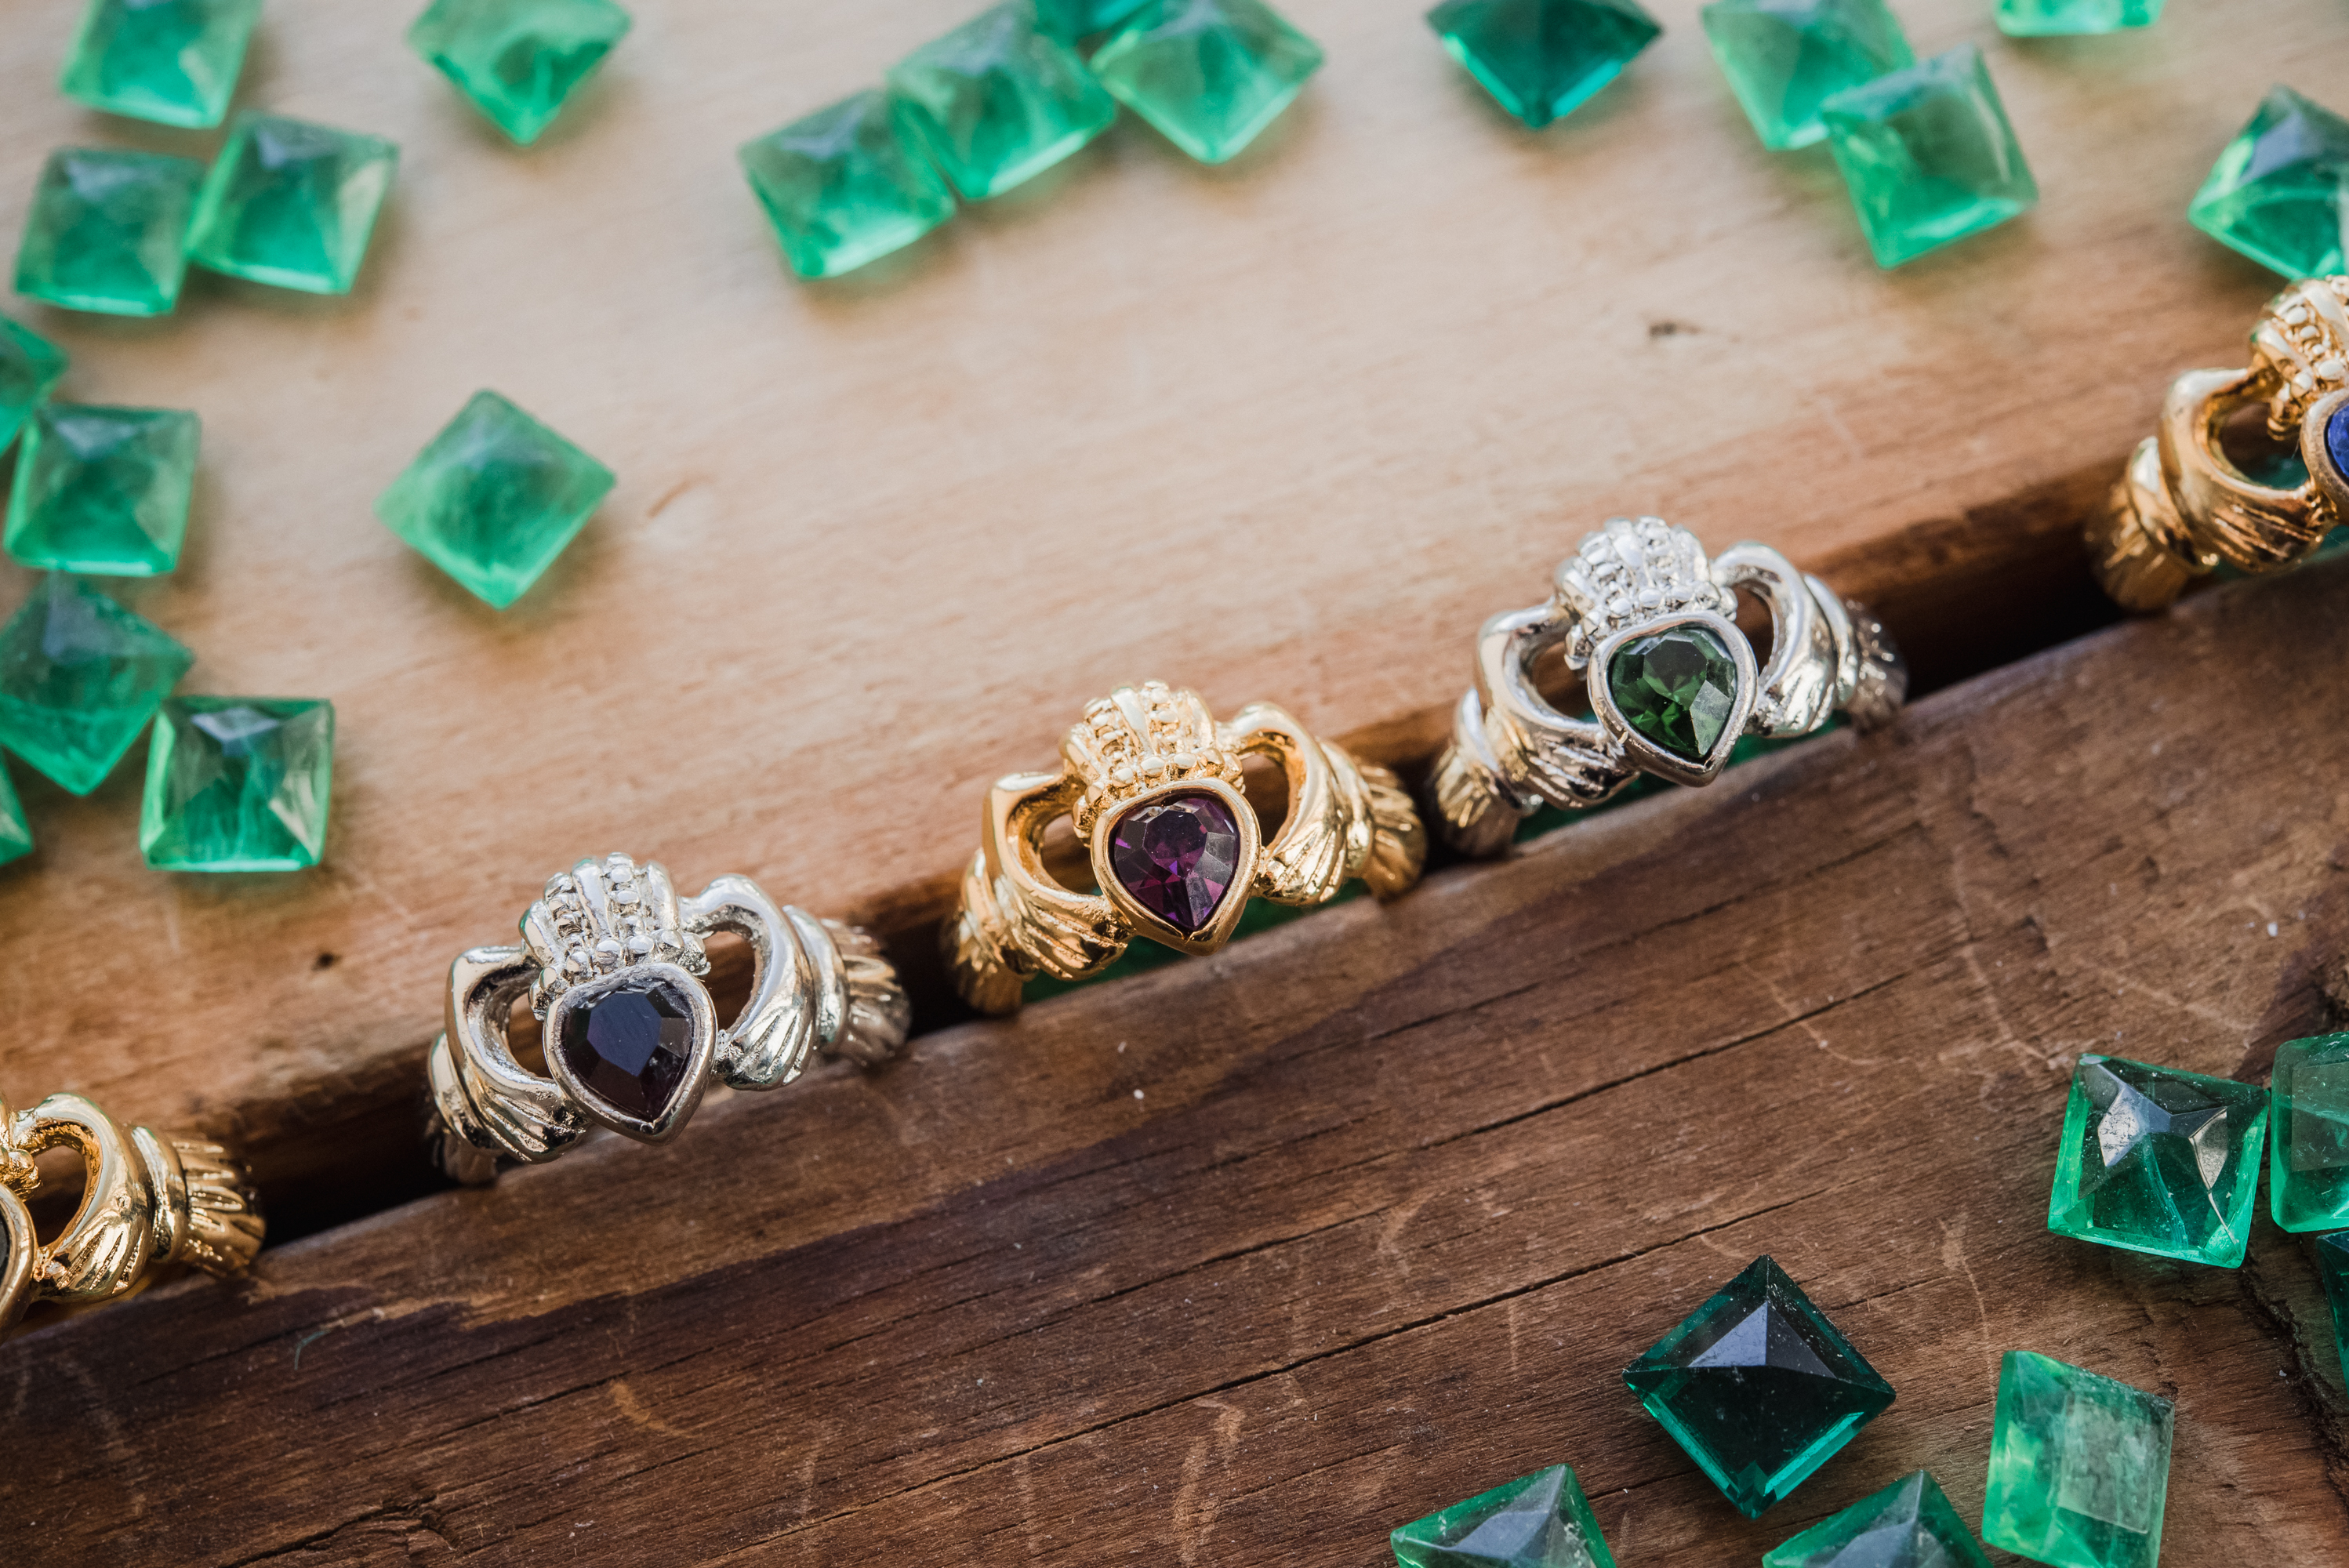 Claddagh rings - emeralds -origin - history of the Claddagh symbol and how to wear the ring